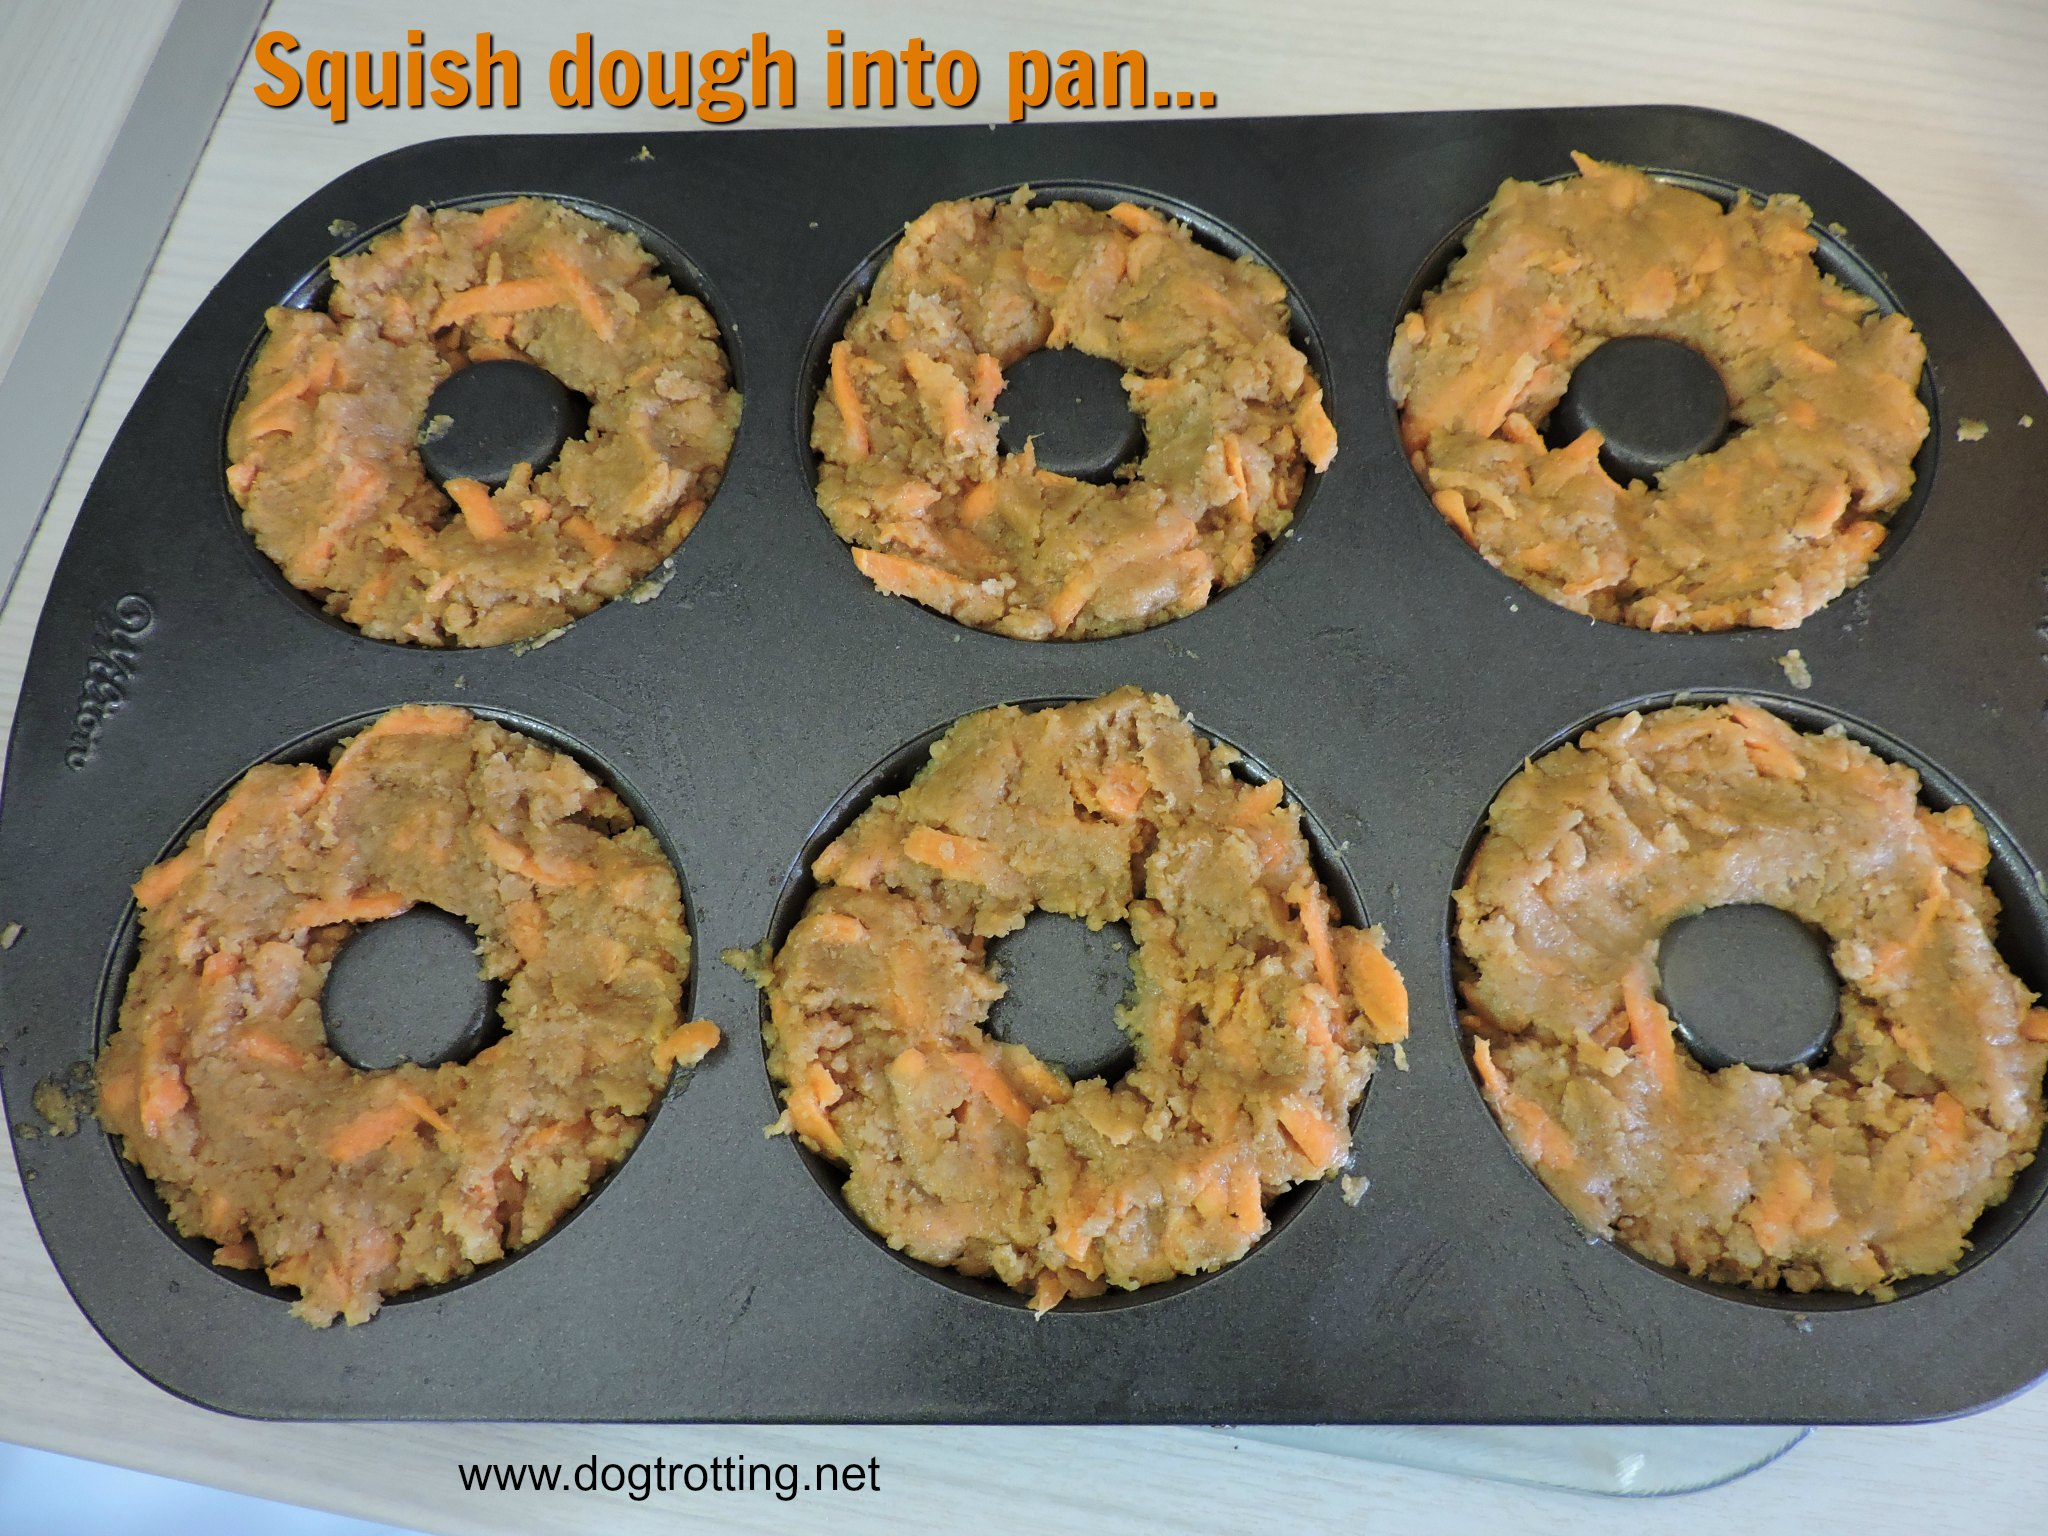 unbaked dog donut treats in a pan